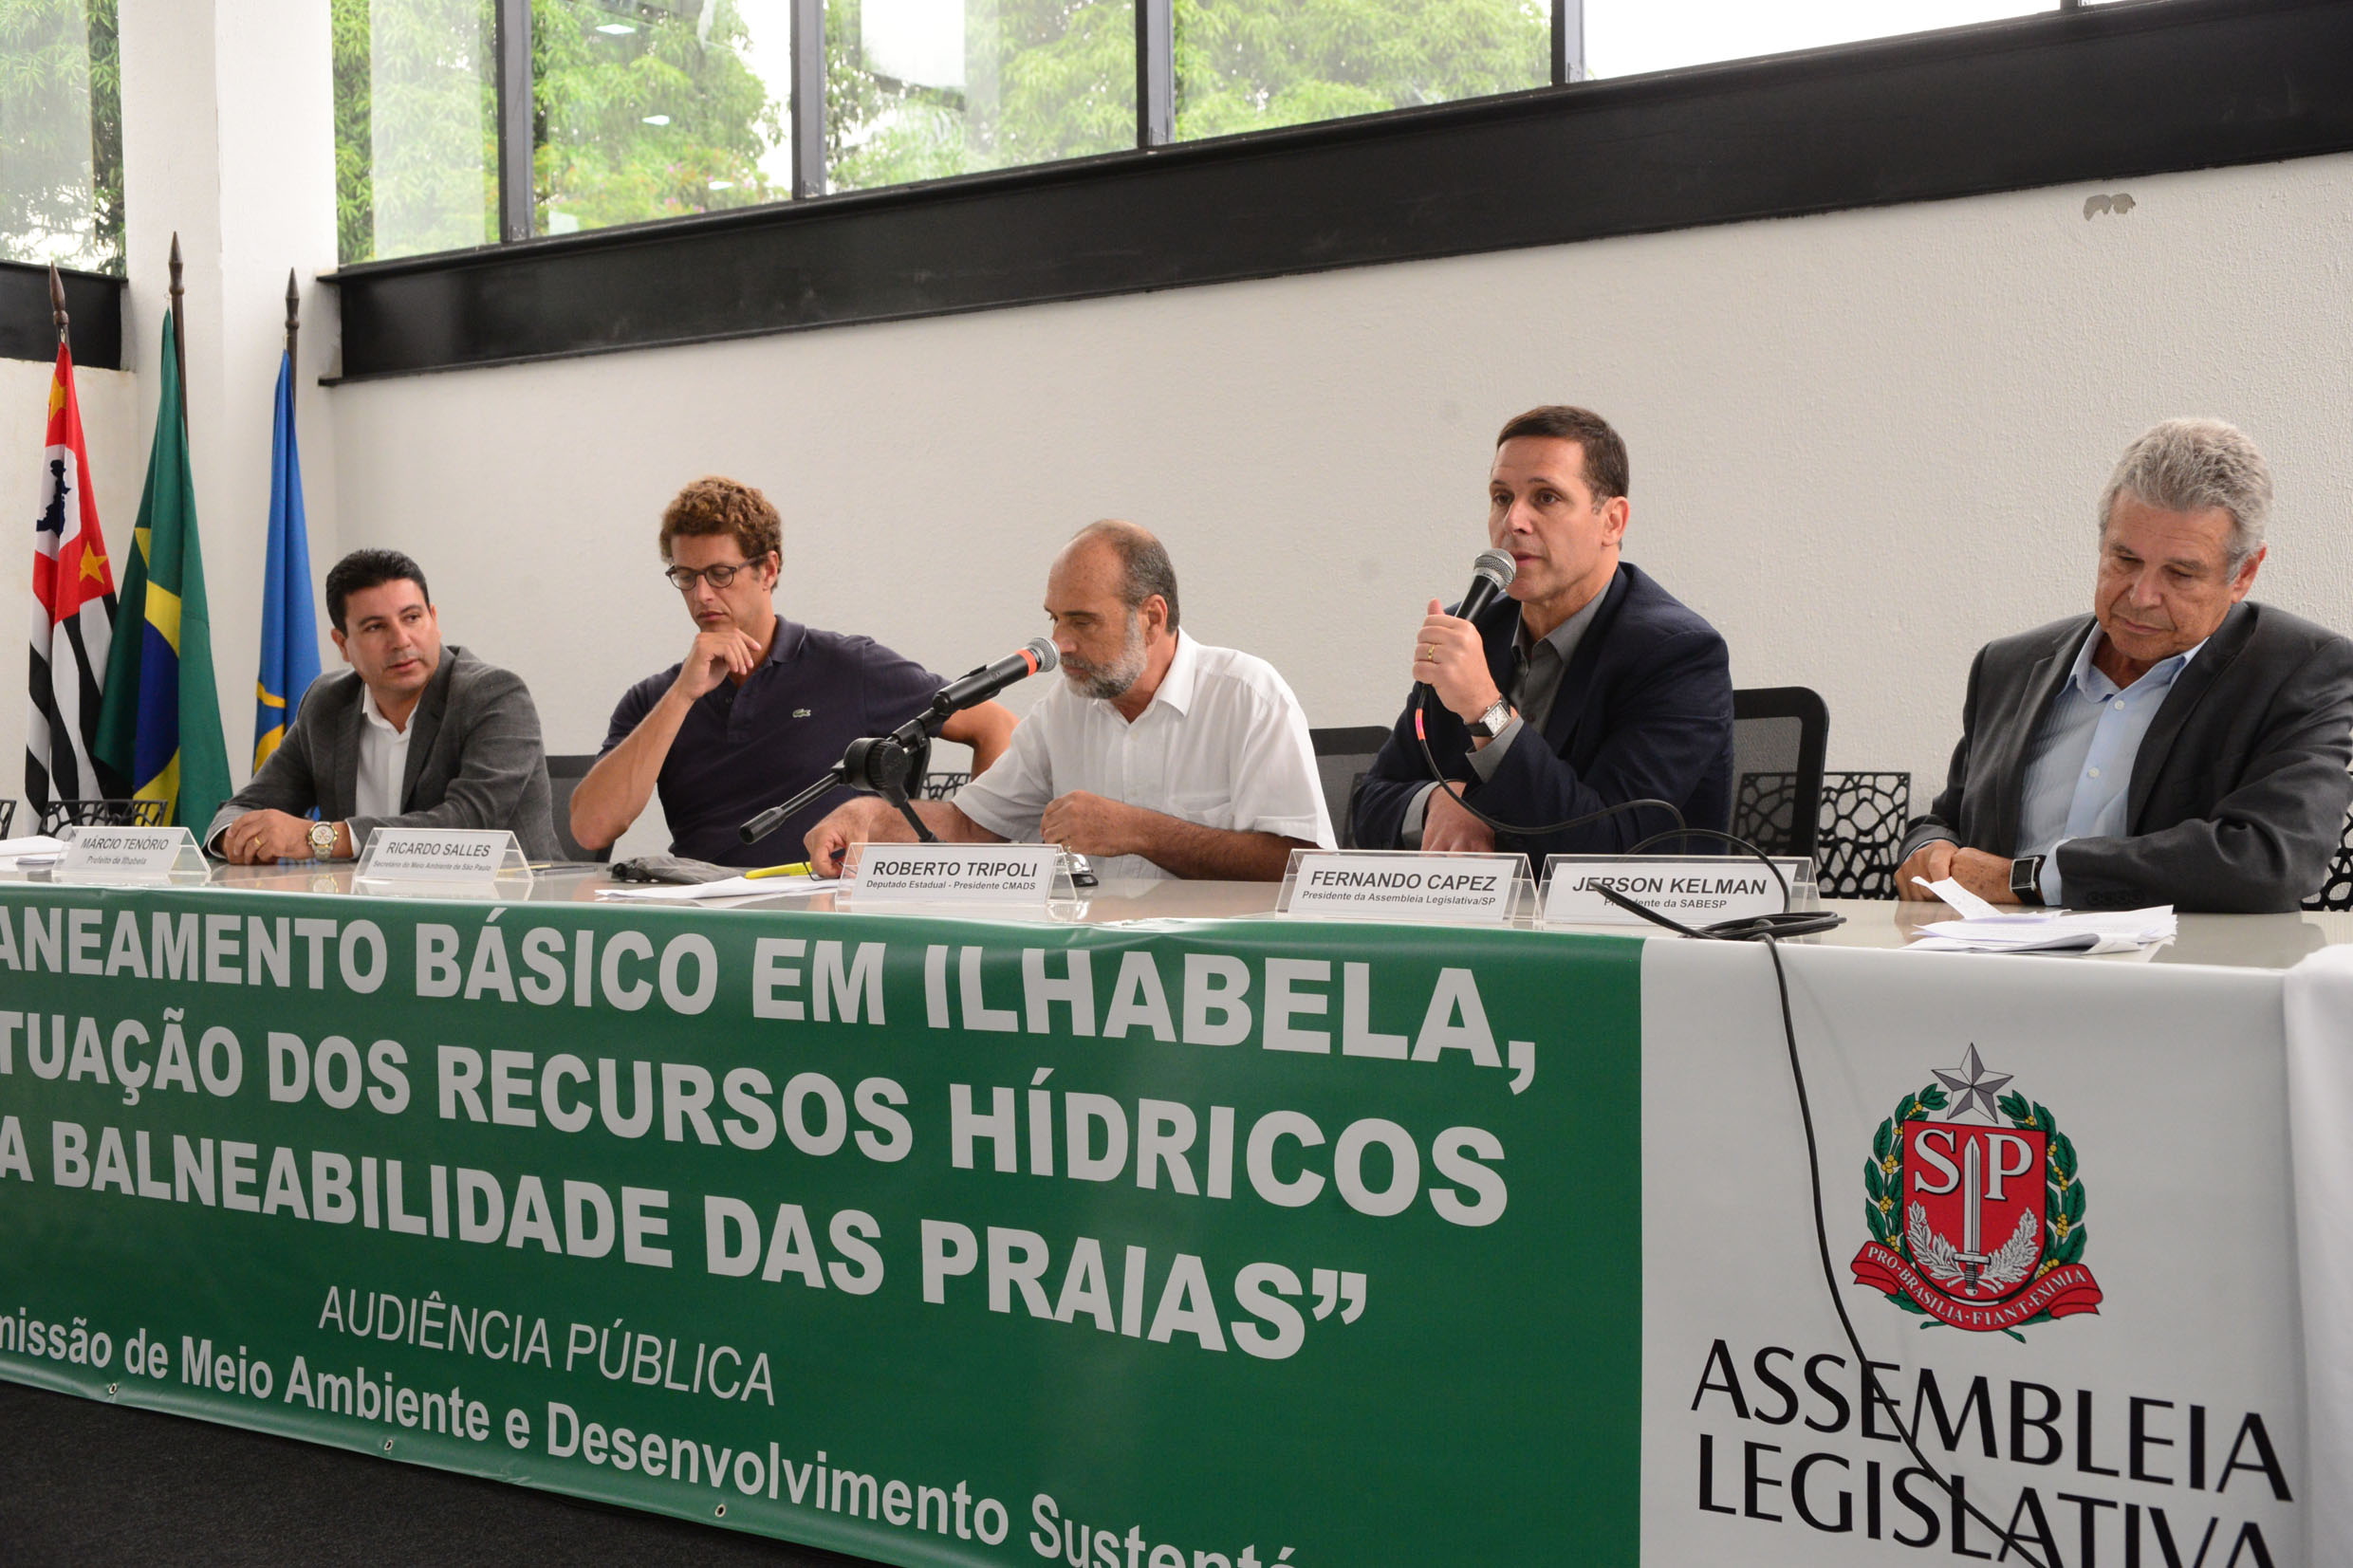 Fernando Capez na abertura dos trabalhos <a style='float:right' href='https://www3.al.sp.gov.br/repositorio/noticia/N-03-2017/fg200079.jpg' target=_blank><img src='/_img/material-file-download-white.png' width='14px' alt='Clique para baixar a imagem'></a>